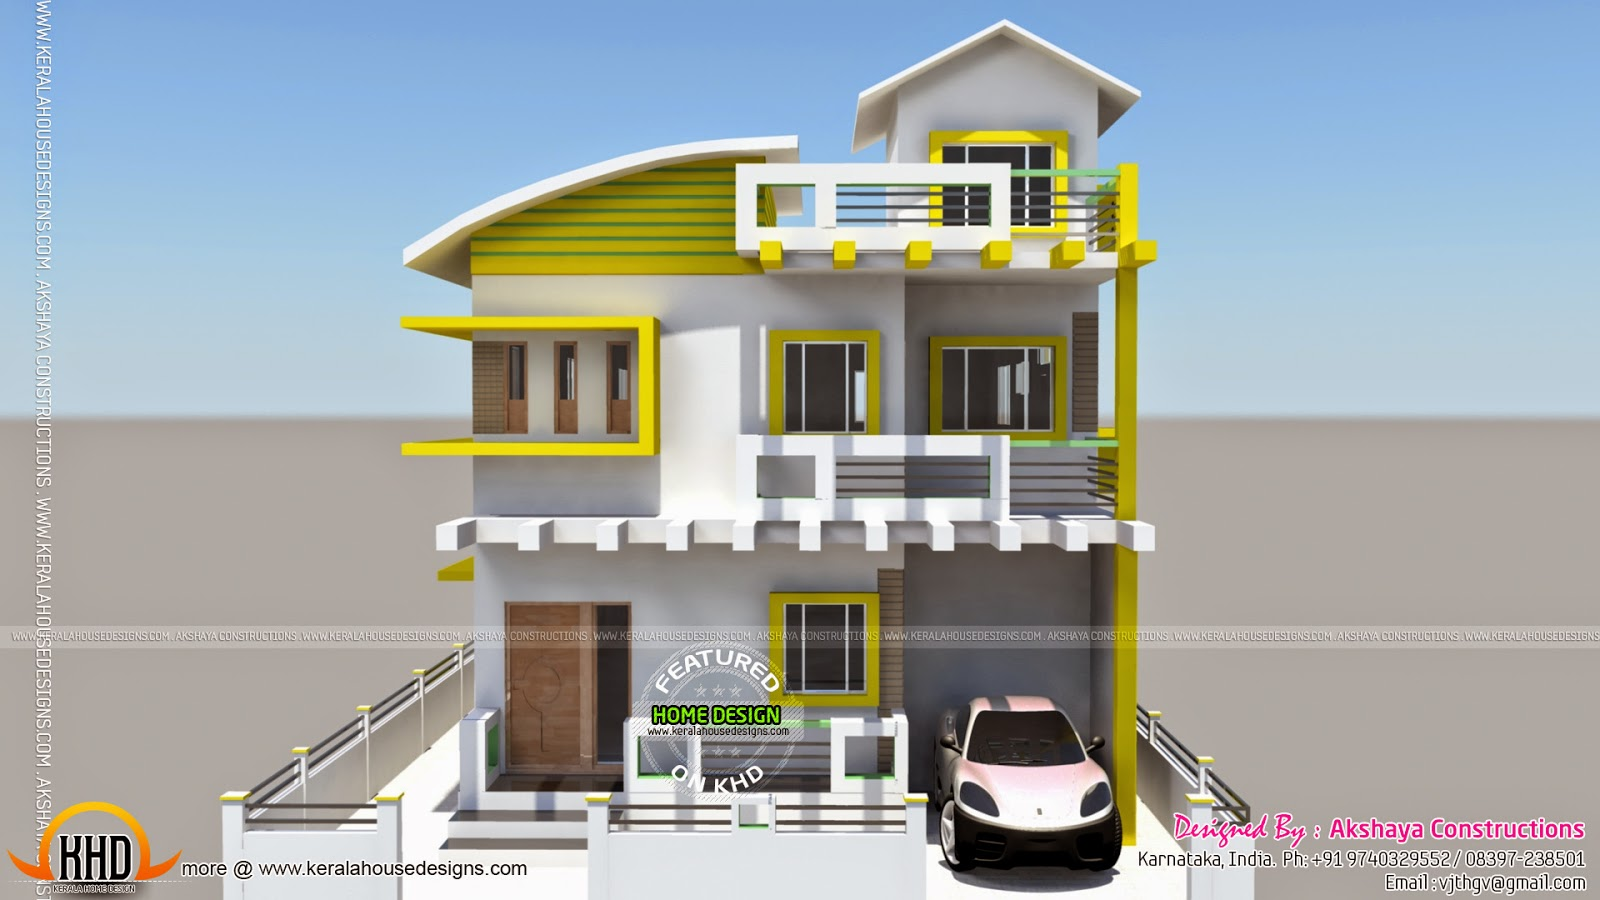 Karnataka home design kerala home design and floor plans for Design your house